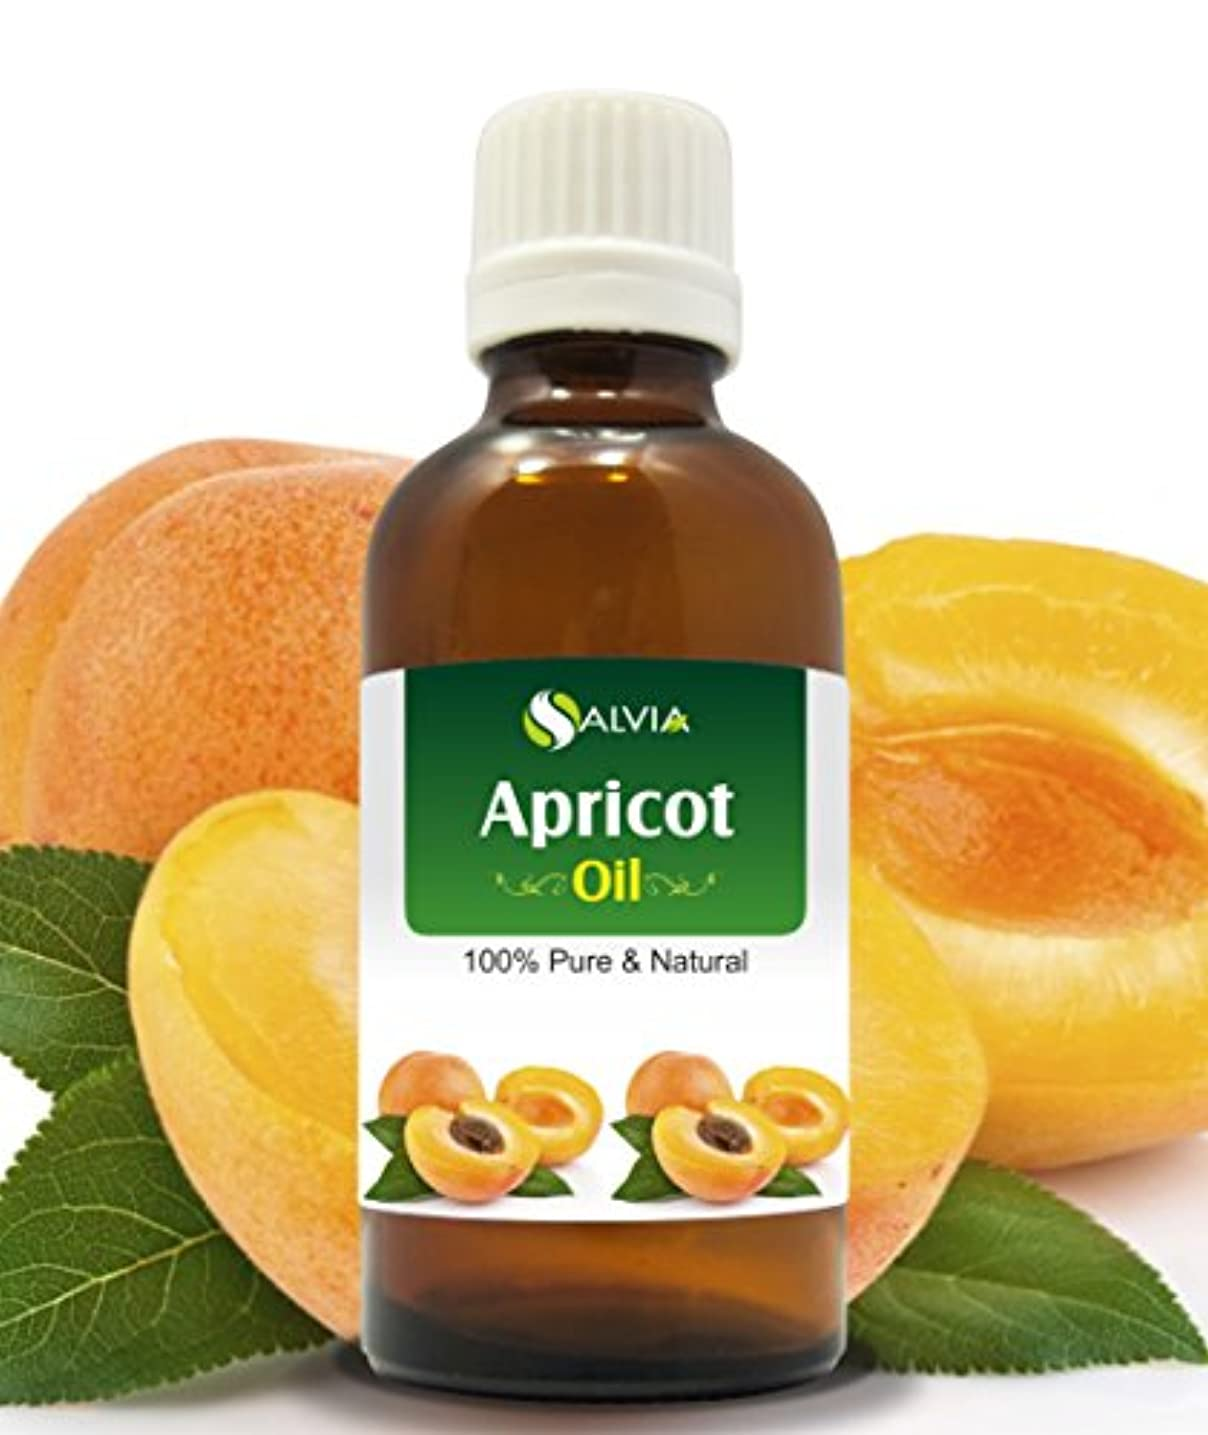 クレアなす打ち上げるAPRICOT OIL 100% NATURAL PURE UNDILUTED UNCUT CARRIER OIL 50ml